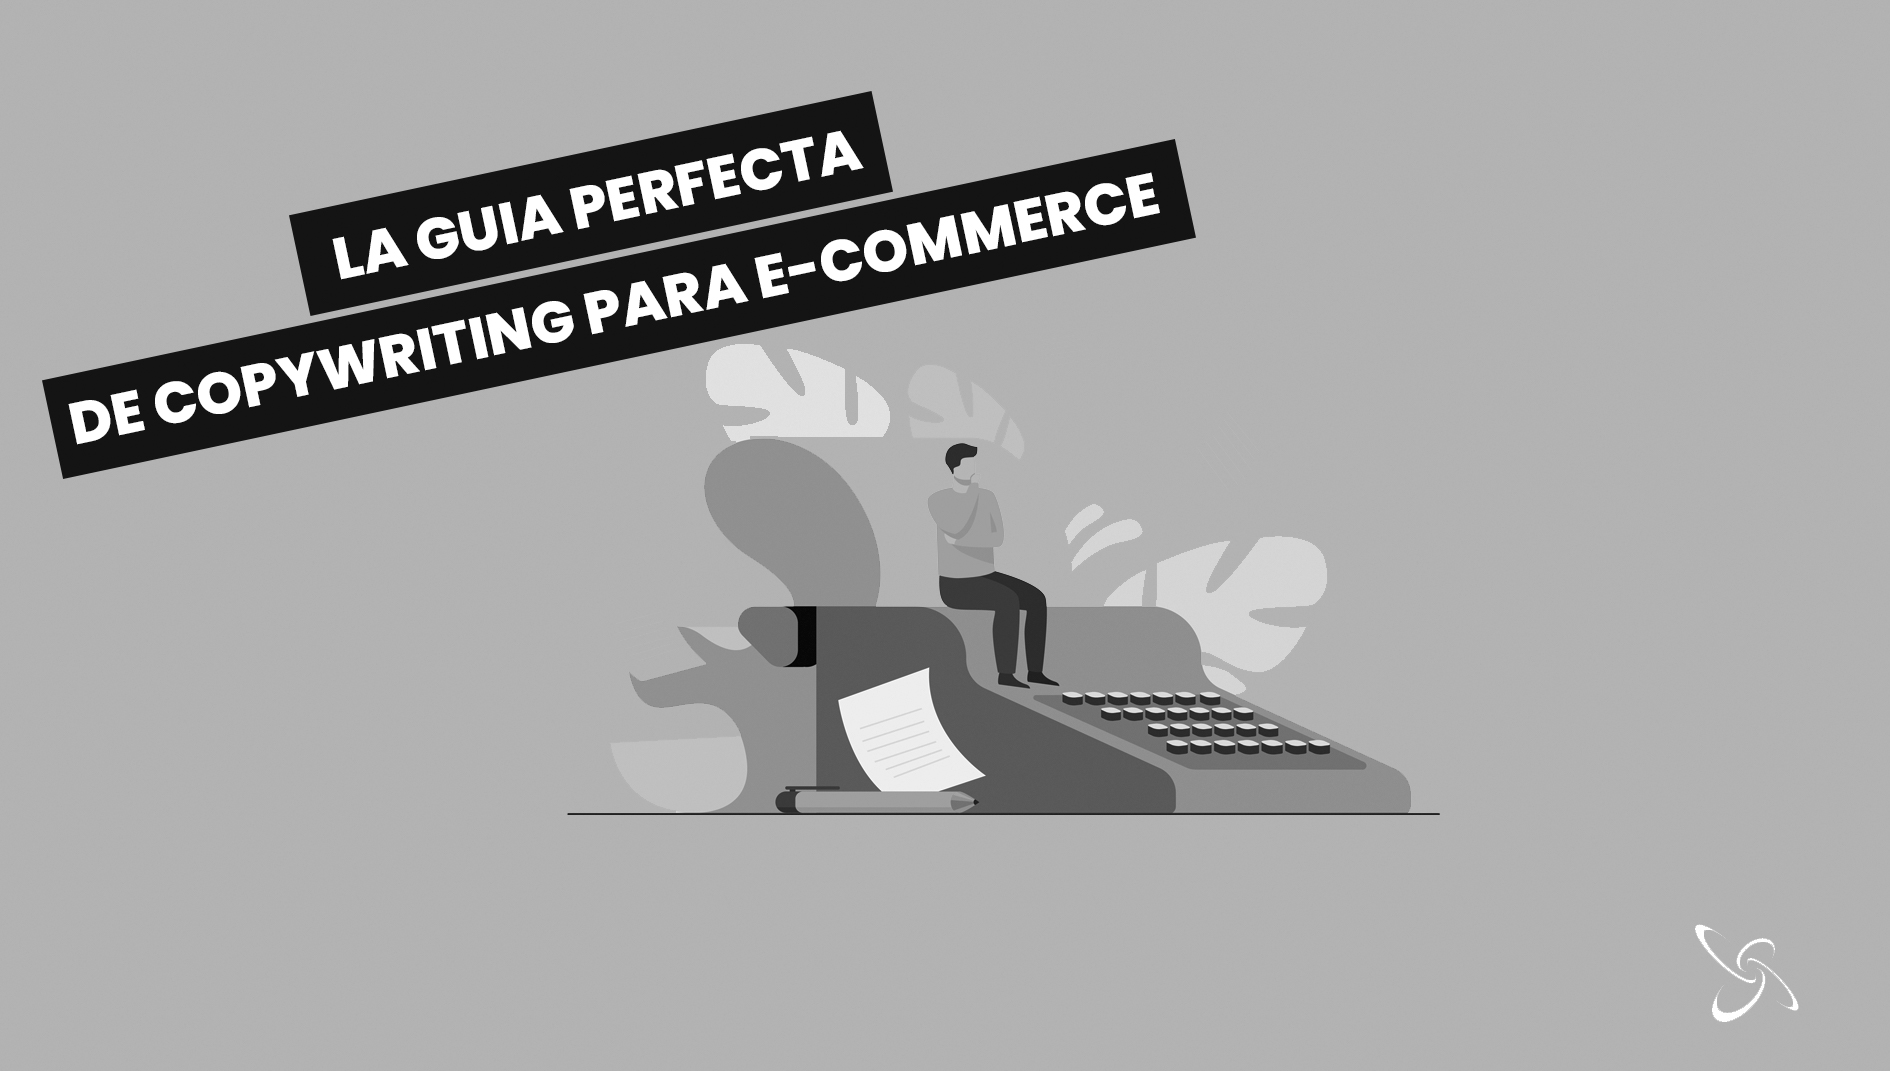 La guía perfecta de Copywriting para e-commerce